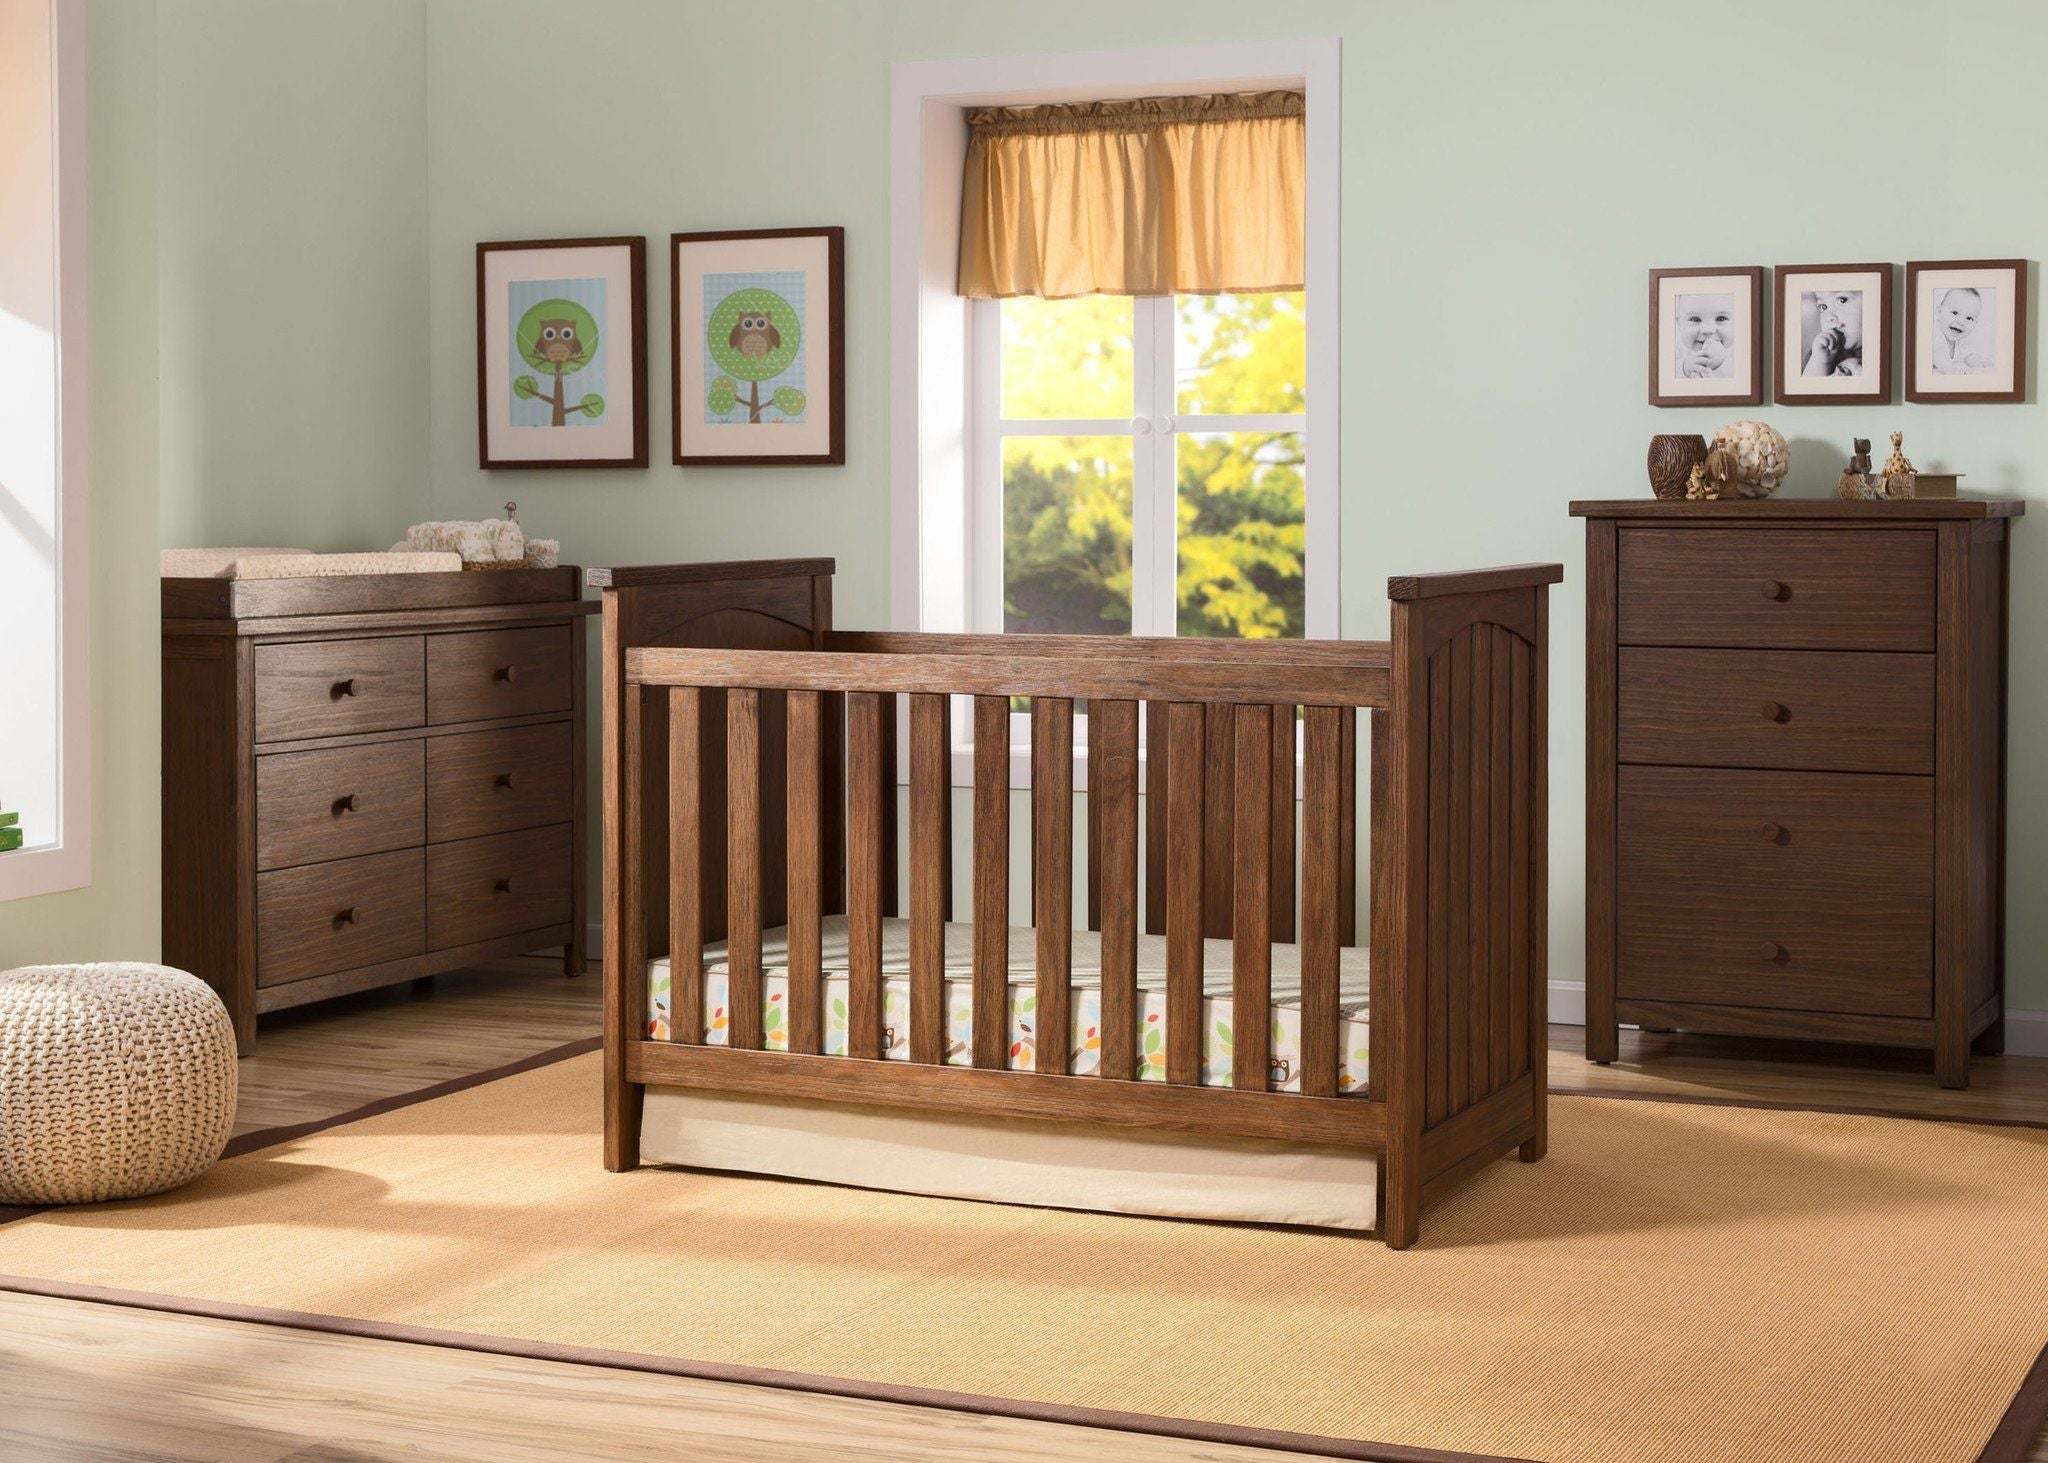 Serta Rustic Oak (229) Northbrook 3-in-1 Crib in Setting b0b